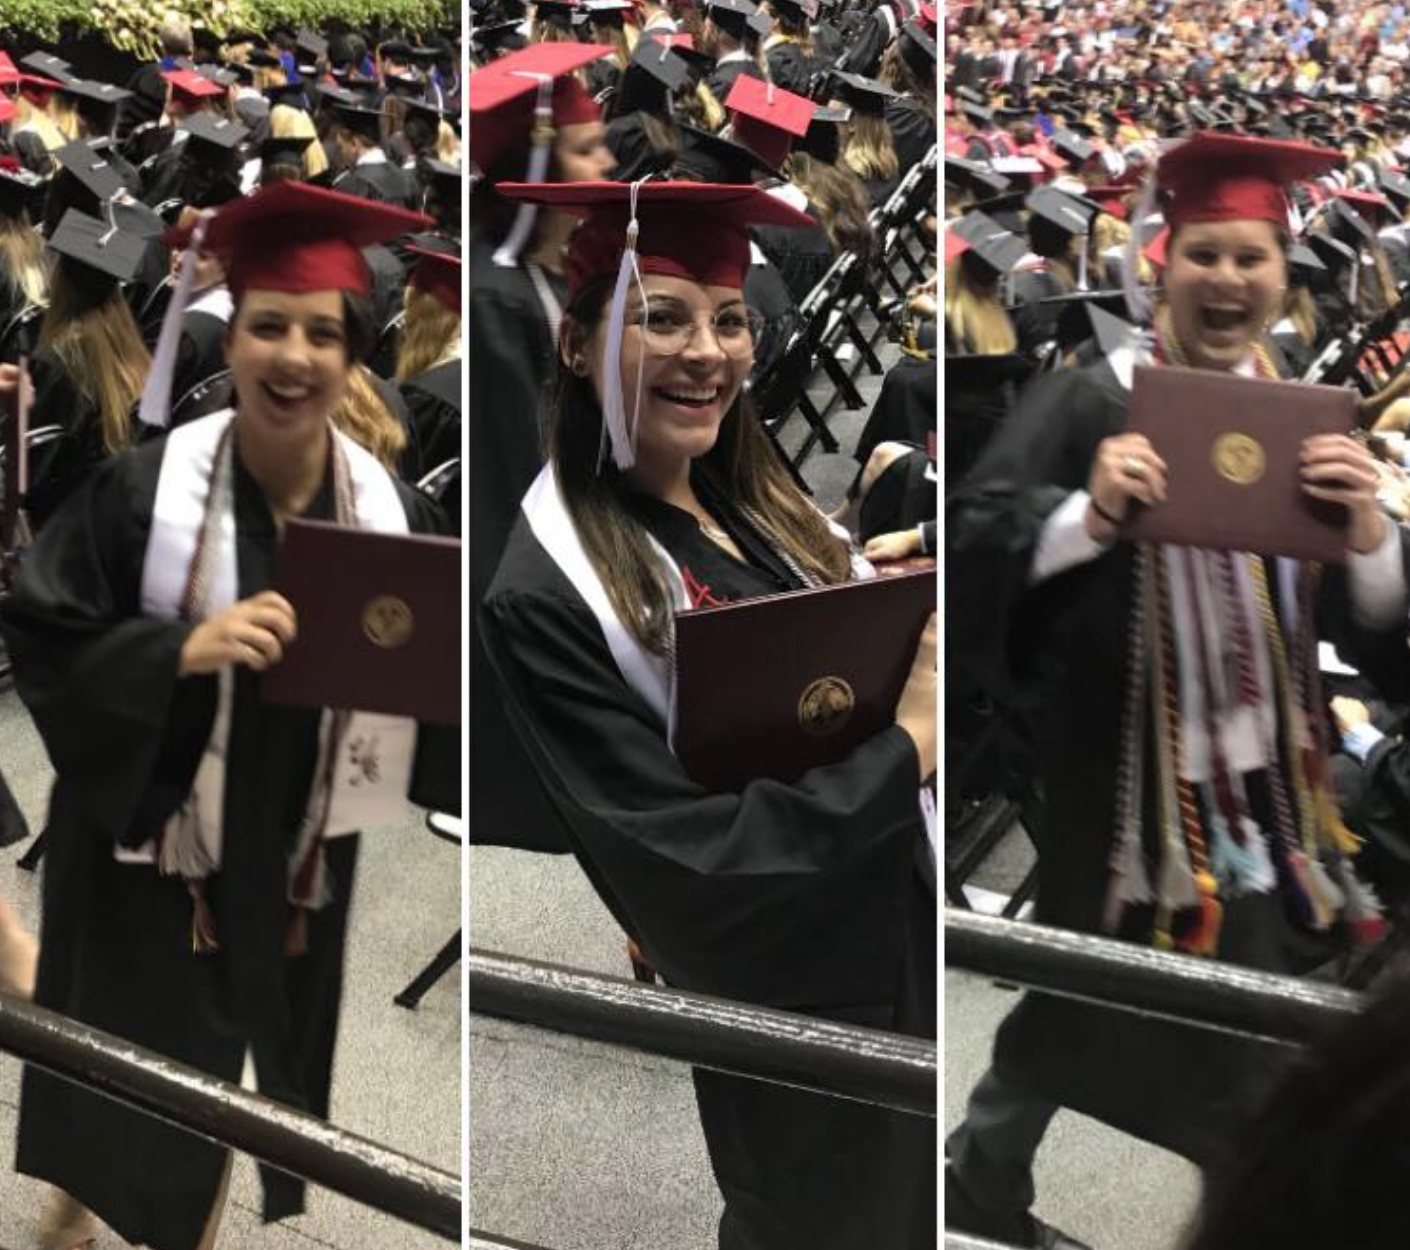 pictures of students at commencement